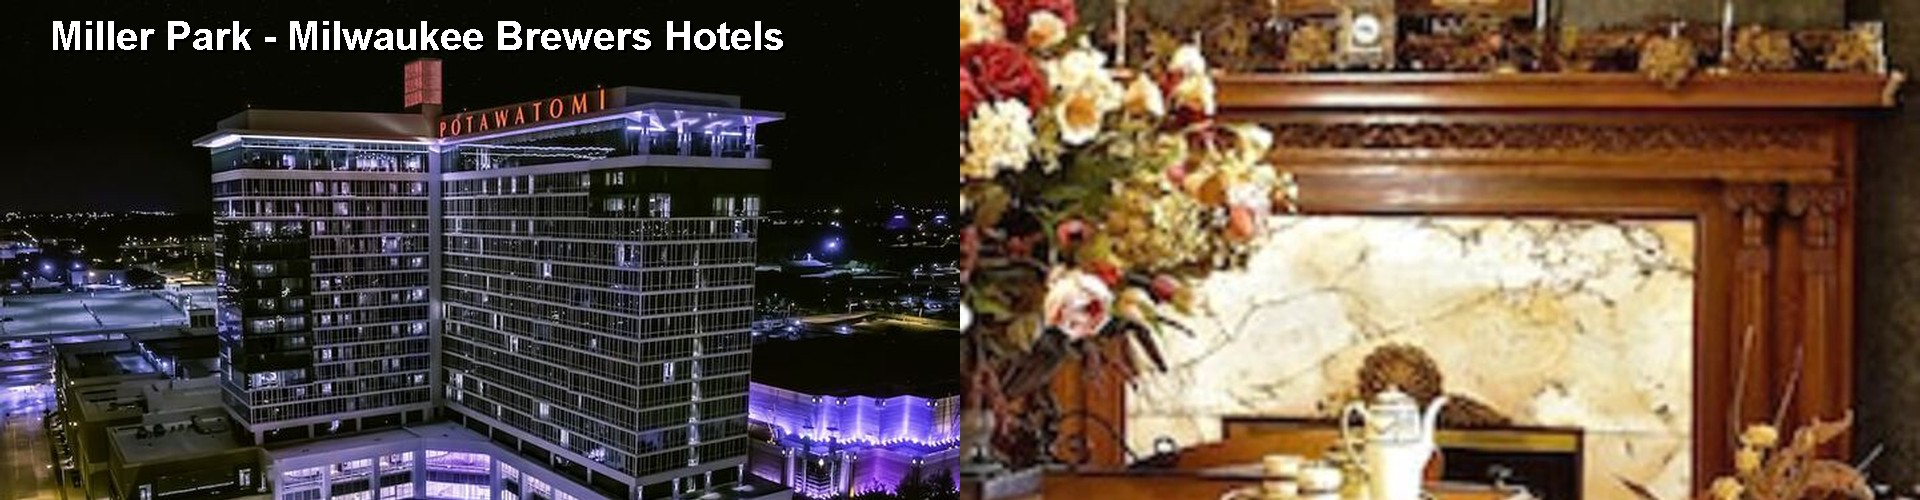 5 Best Hotels near Miller Park - Milwaukee Brewers